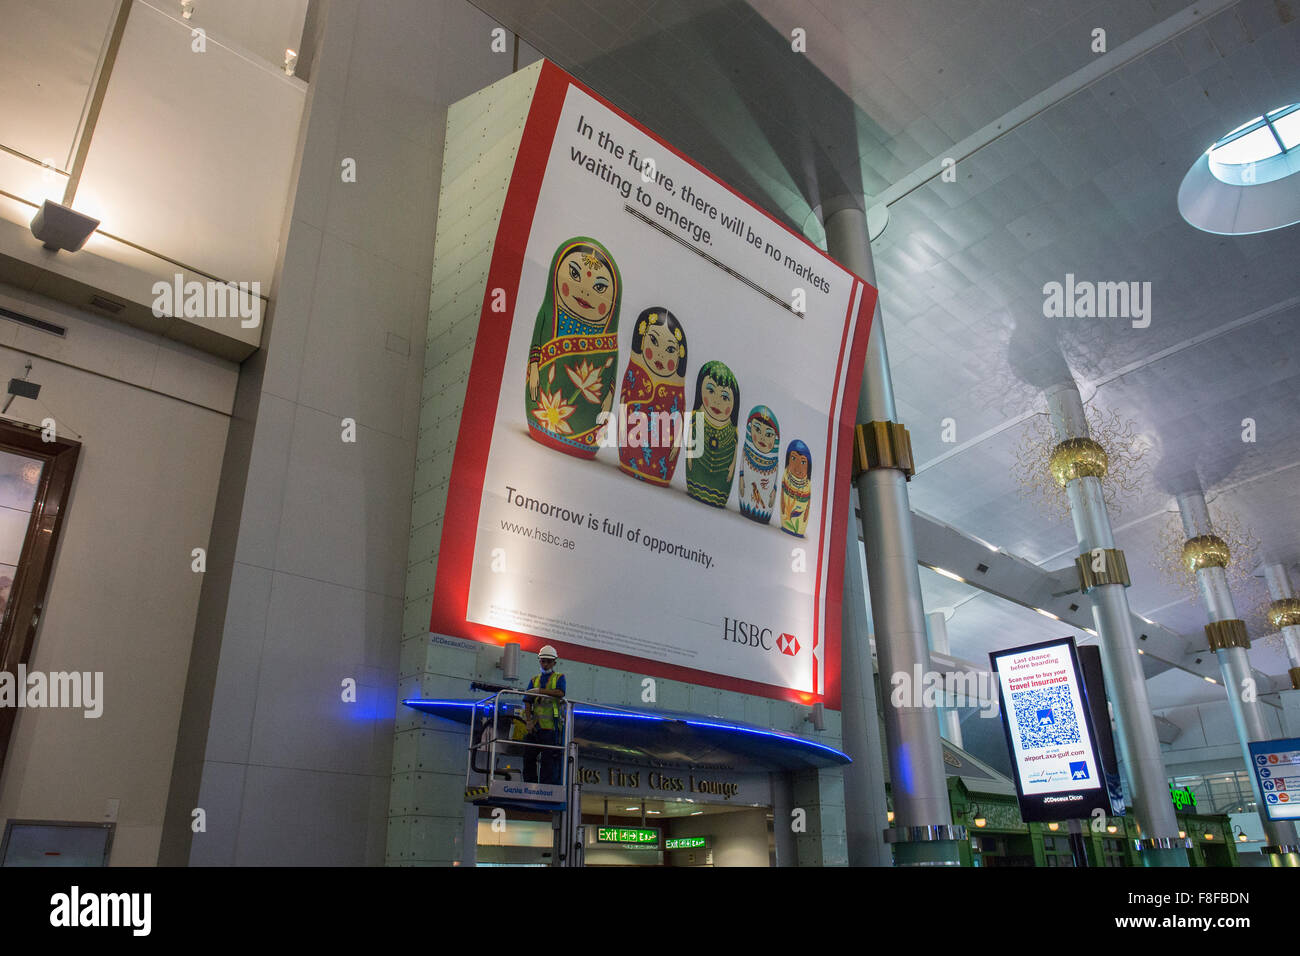 Emirates First Class entrance and HSBC advertisement Stock